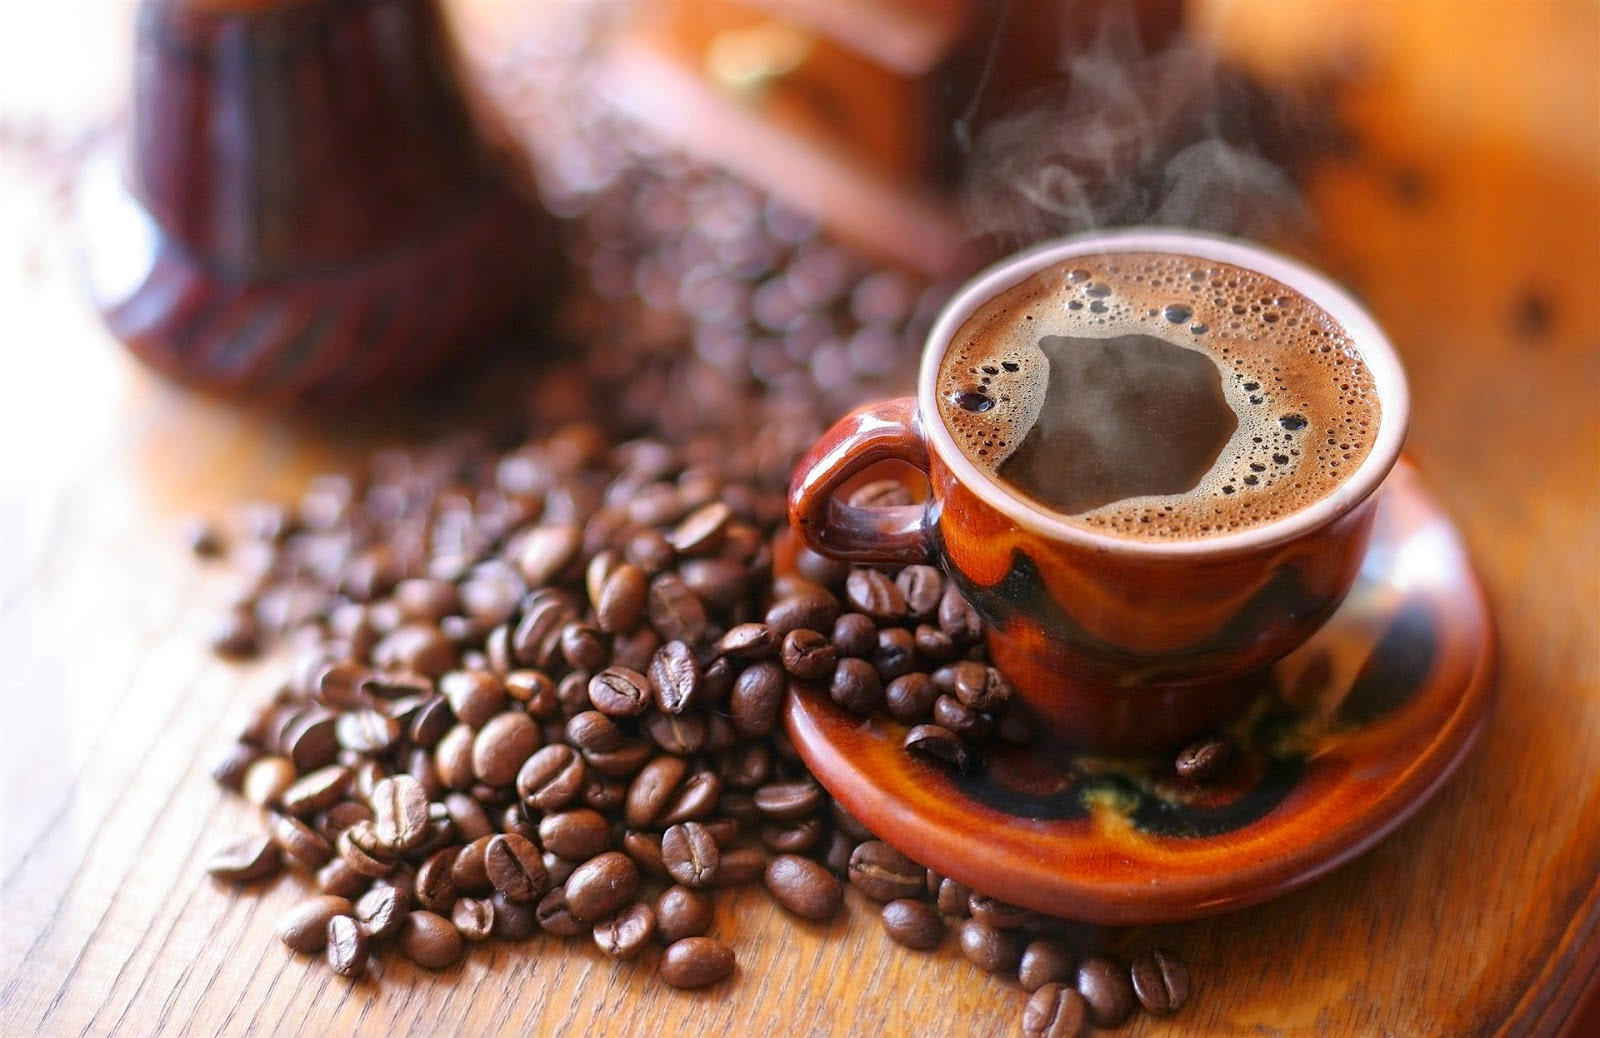 Is Coffee Really All That Bad for You?